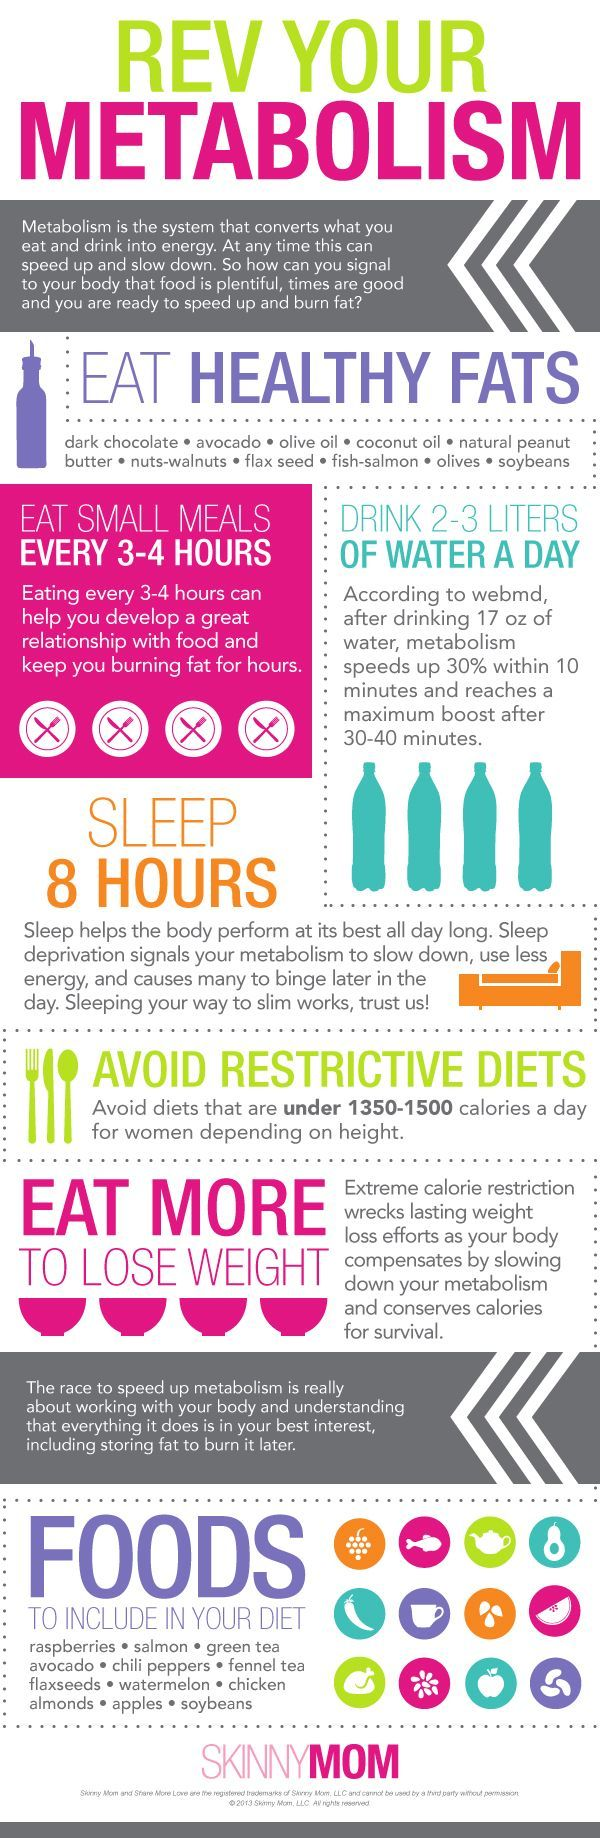 Here are some tips to help you rev up your metabolism!